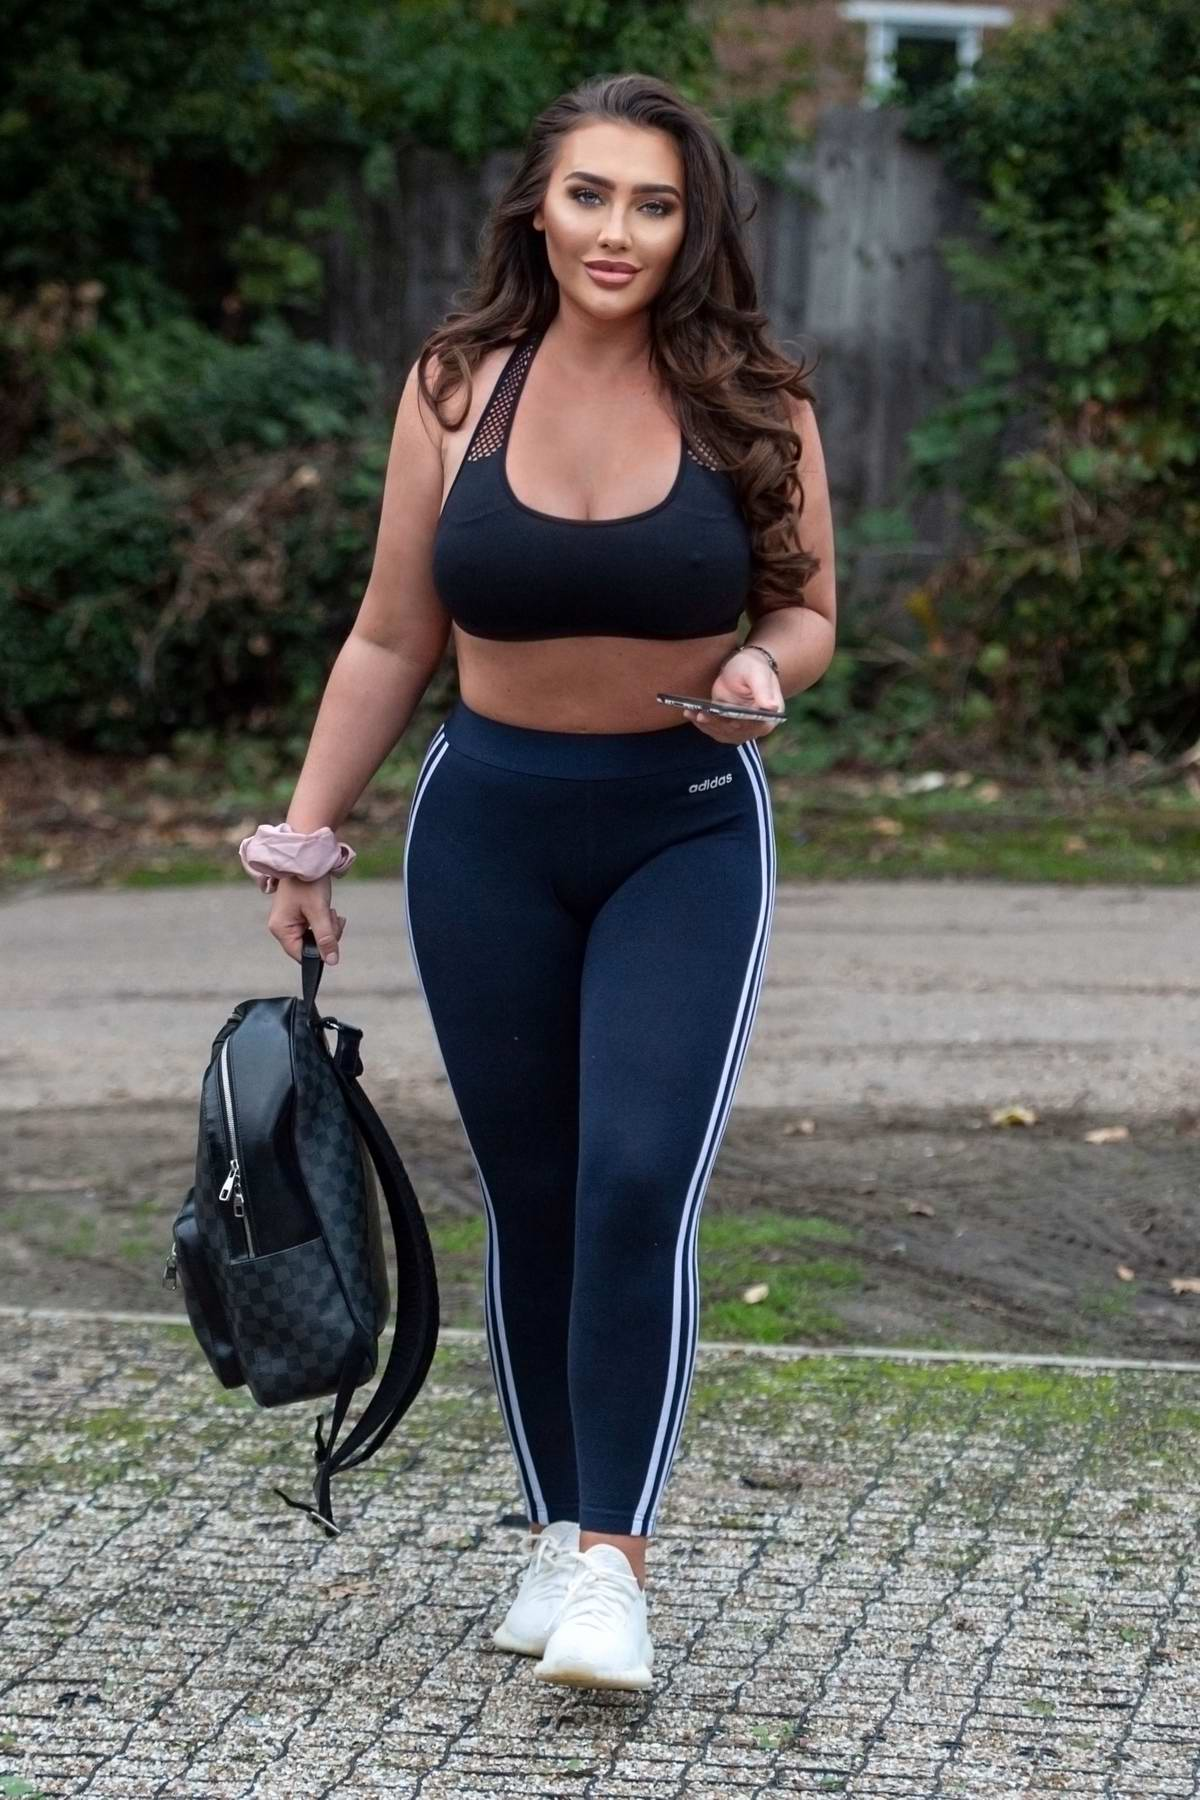 Lauren Goodger shows off her midriff in a crop top and leggings out in Chigwell, Essex, UK